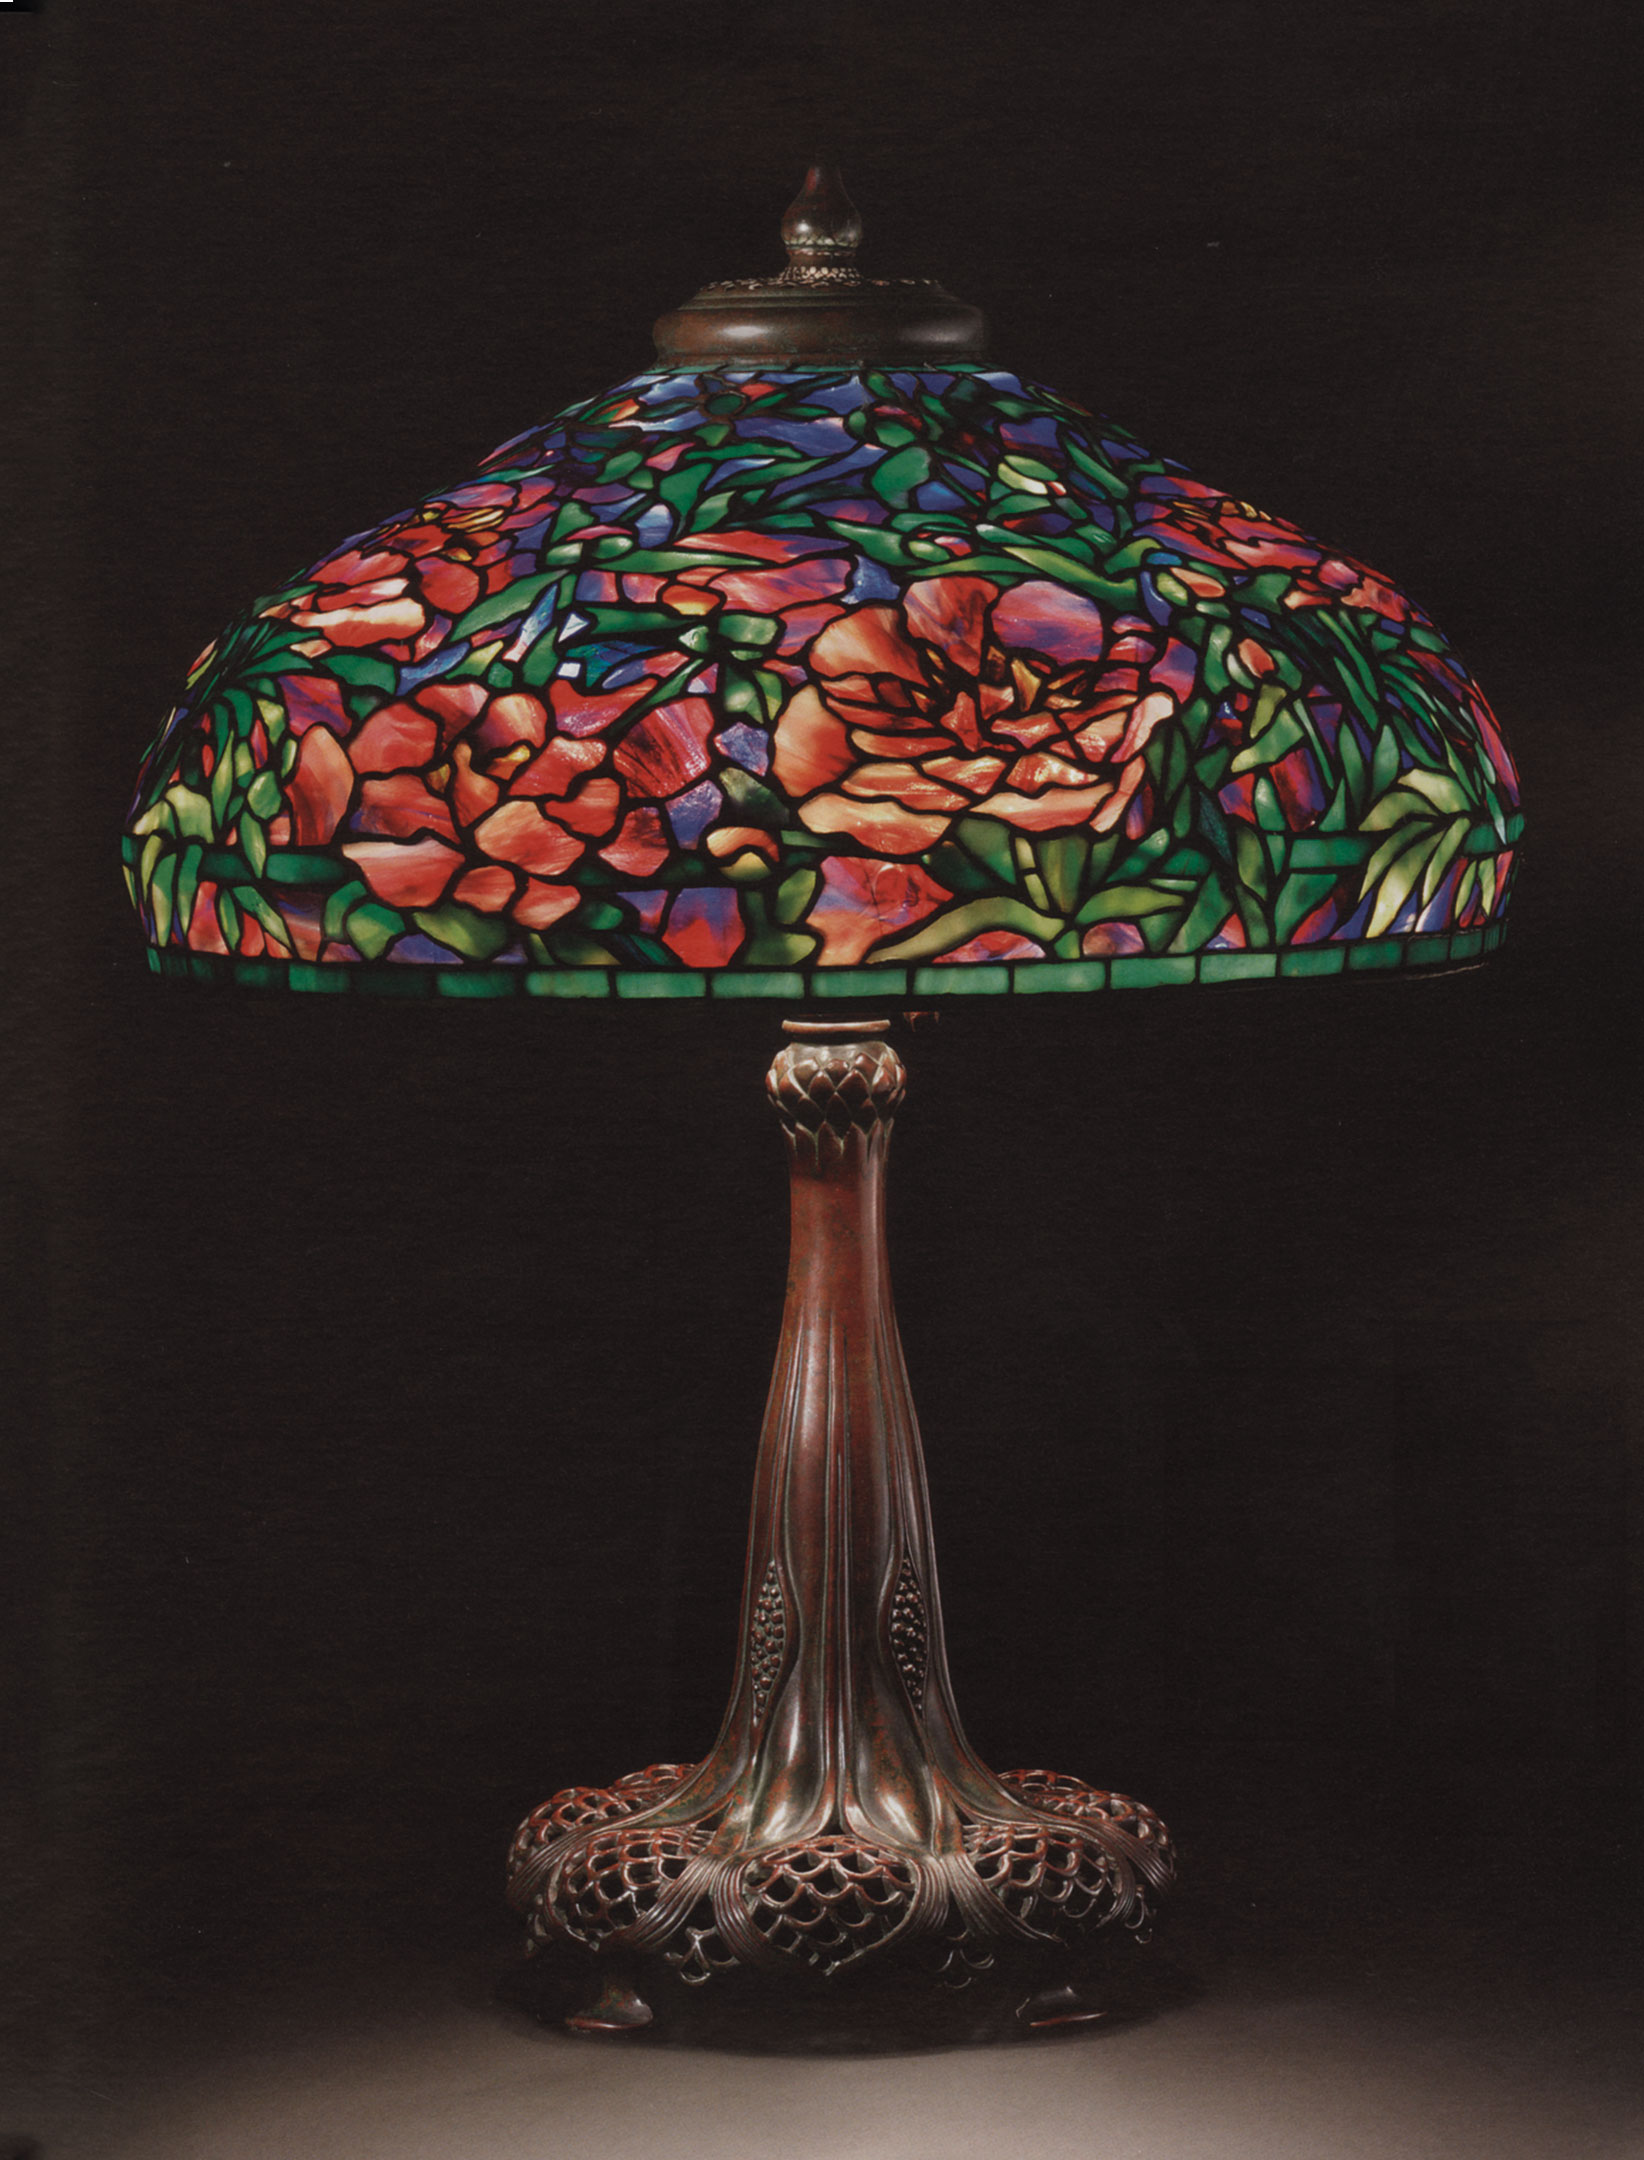 Charmant Tiffany Studios, An Elaborate U0027Peonyu0027 Leaded Glass And Bronze Table Lamp,  Circa